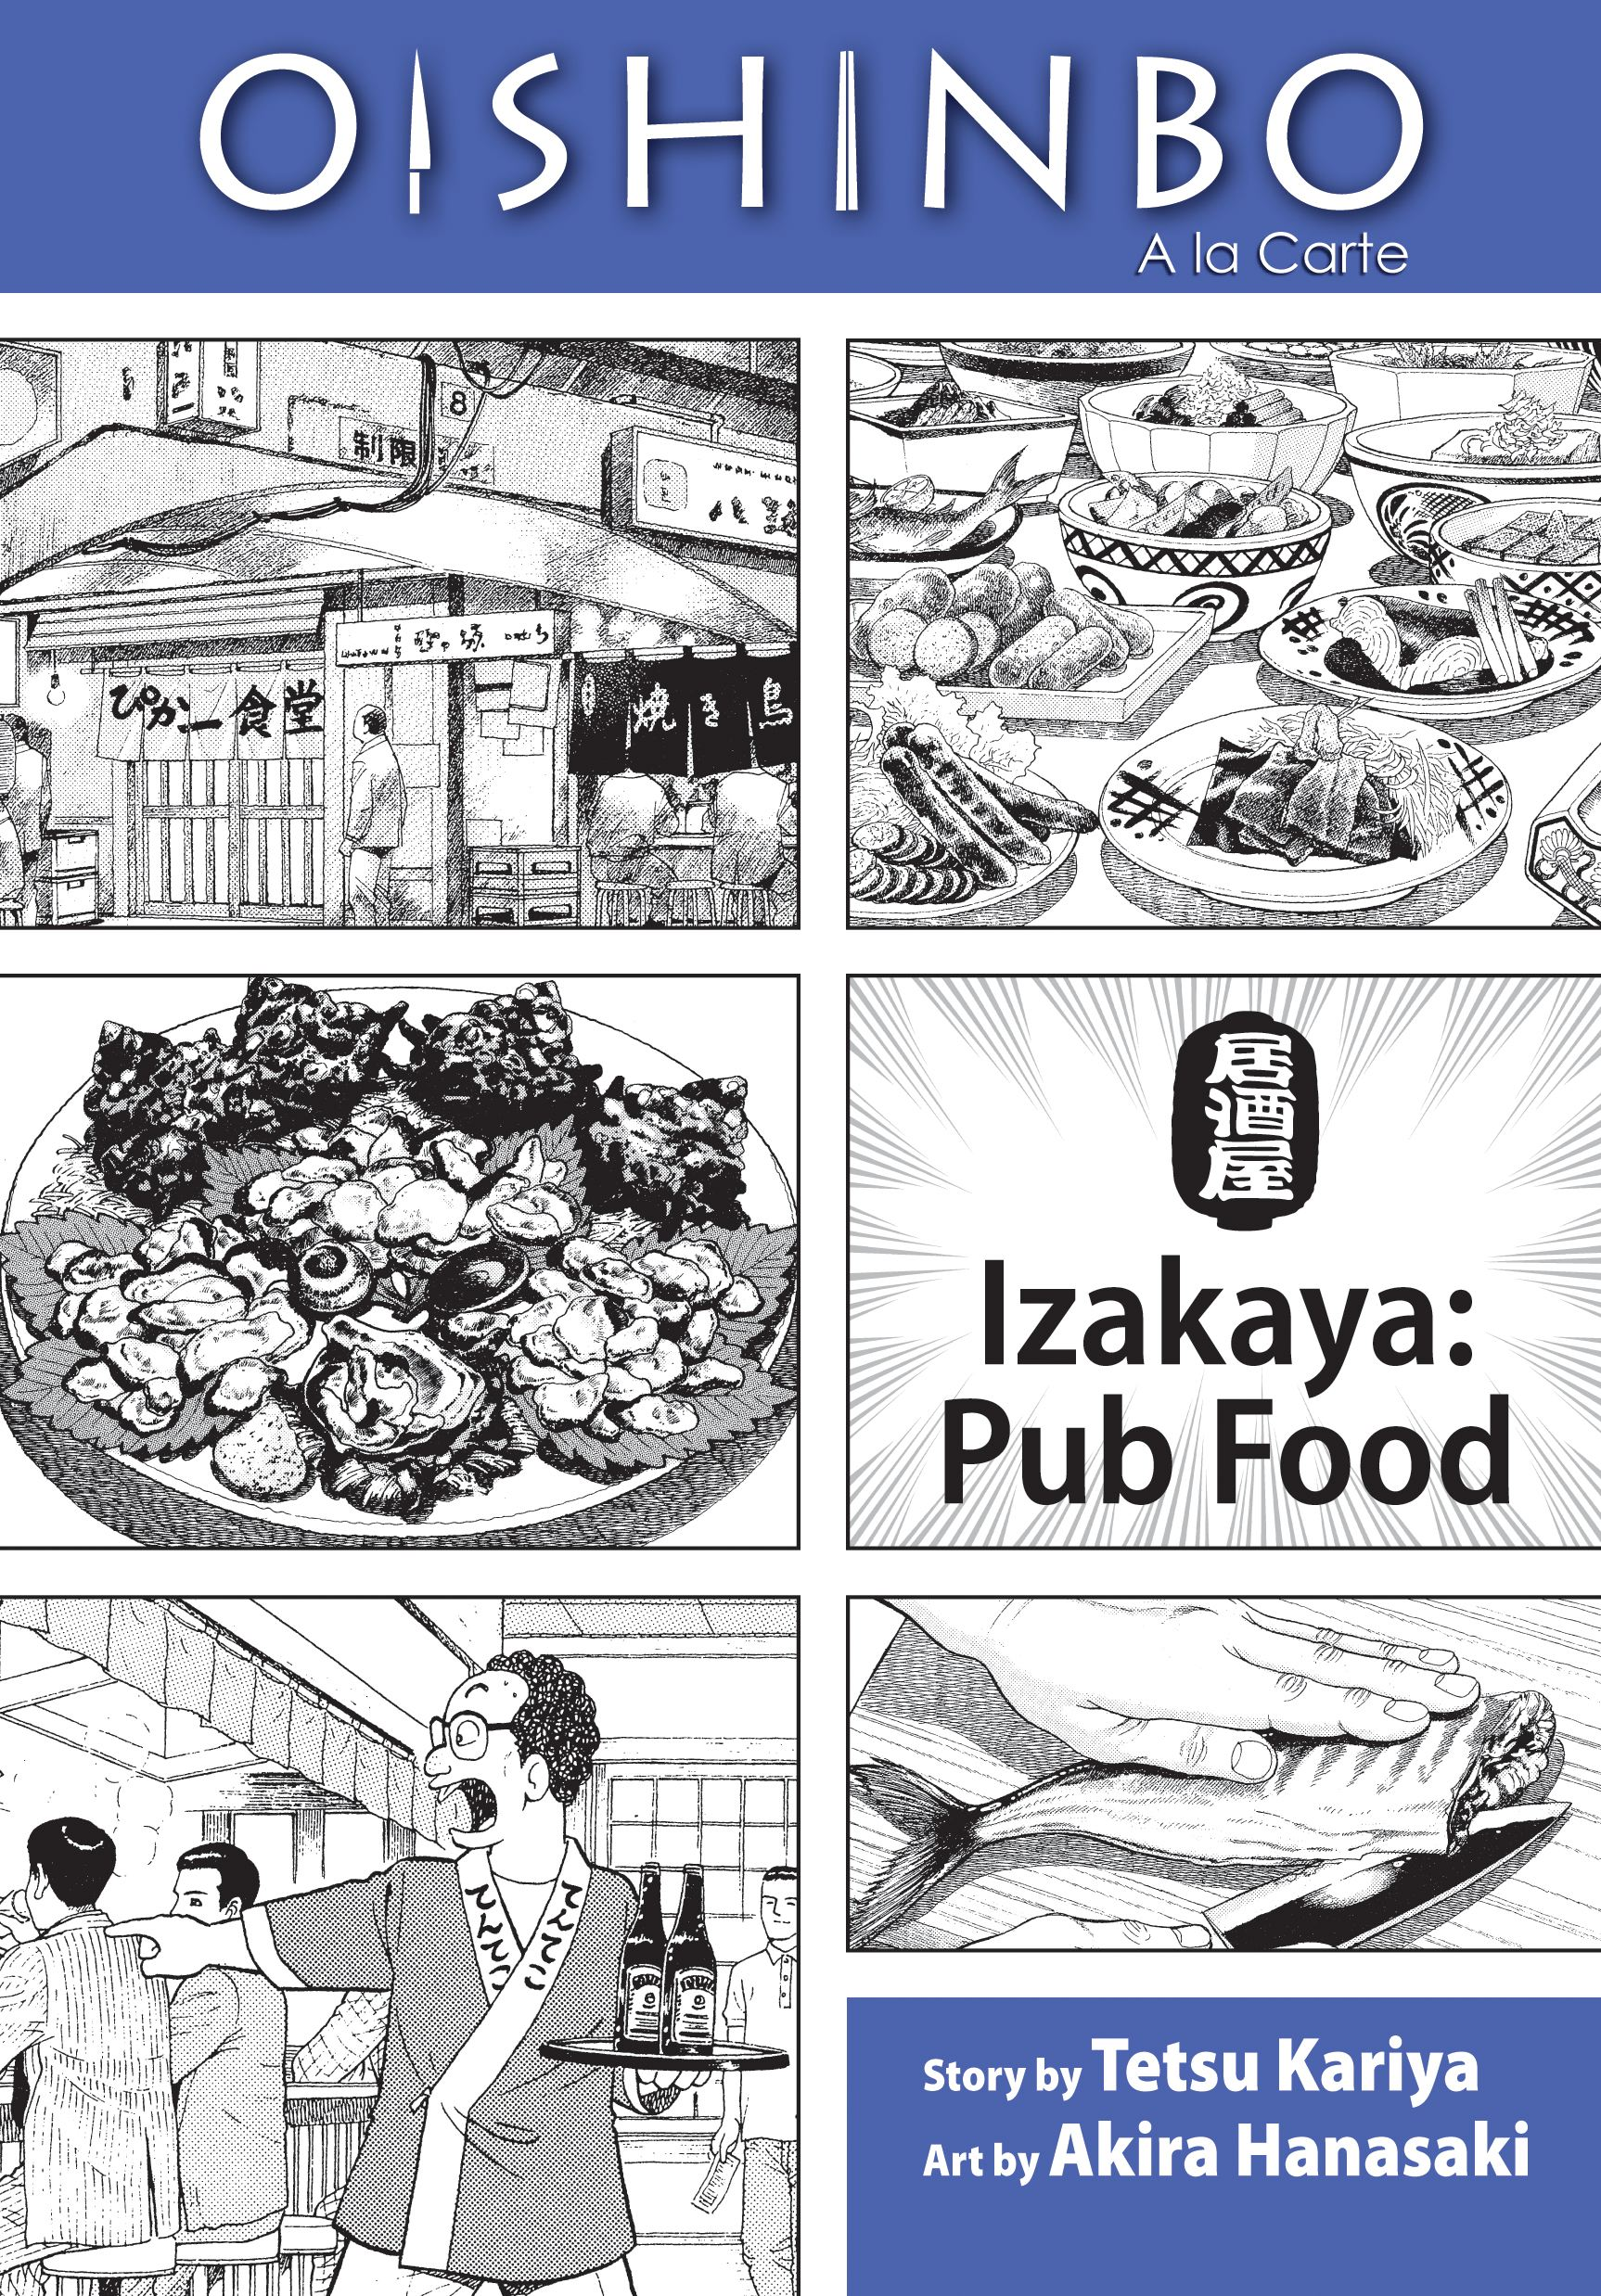 Oishinbo-izakaya-pub-food-9781421521459_hr